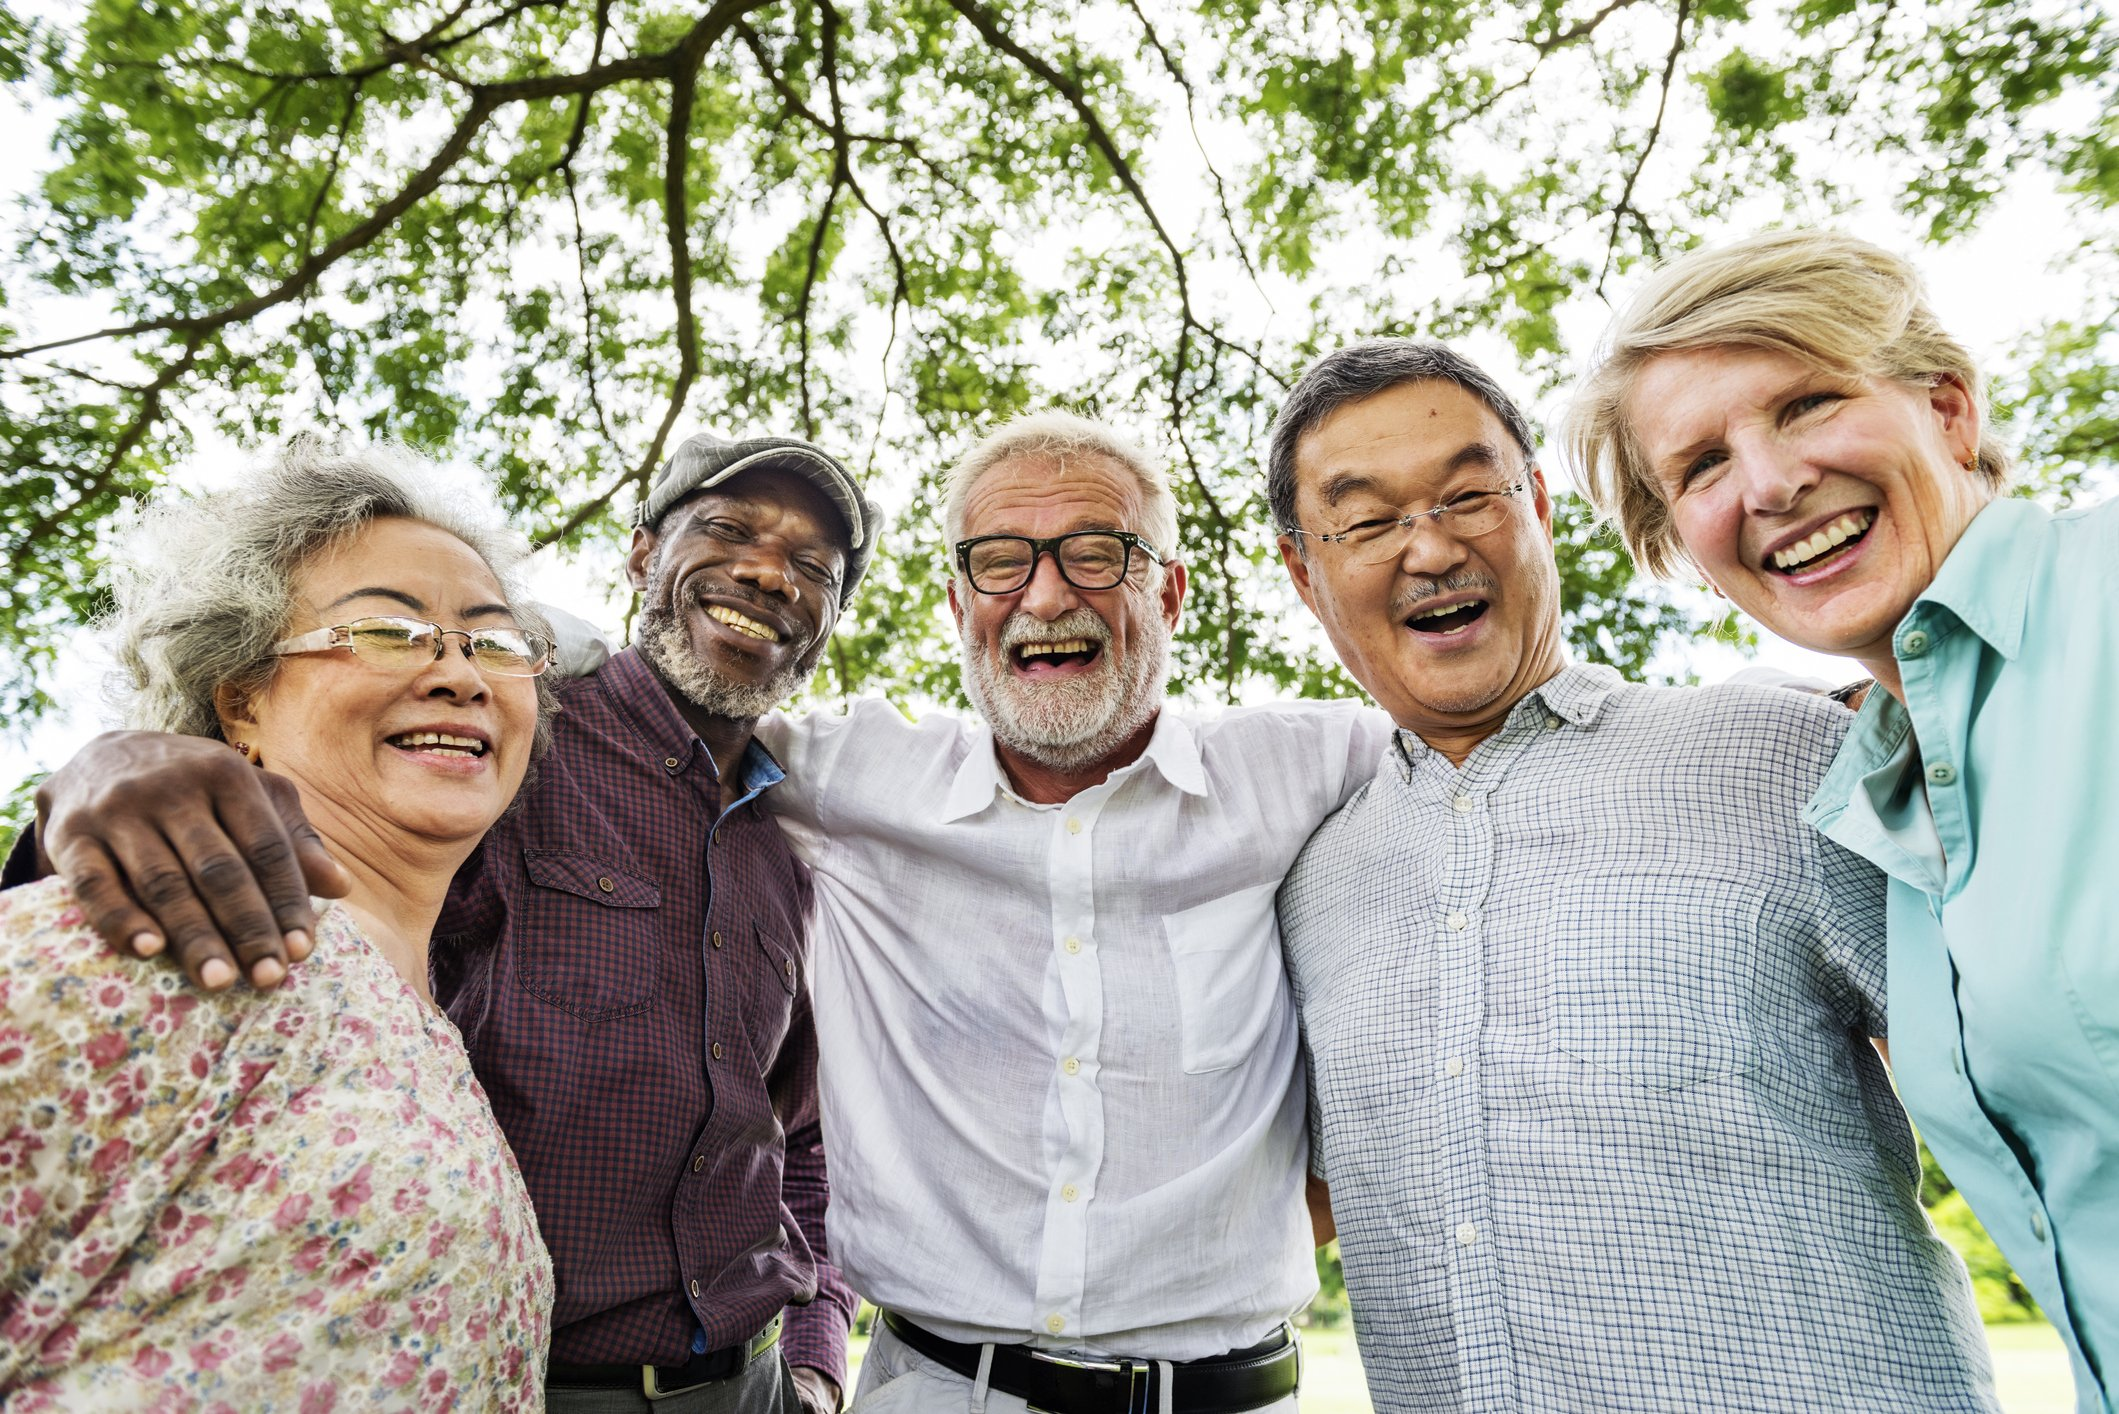 Older Adults Smiling and Laughing